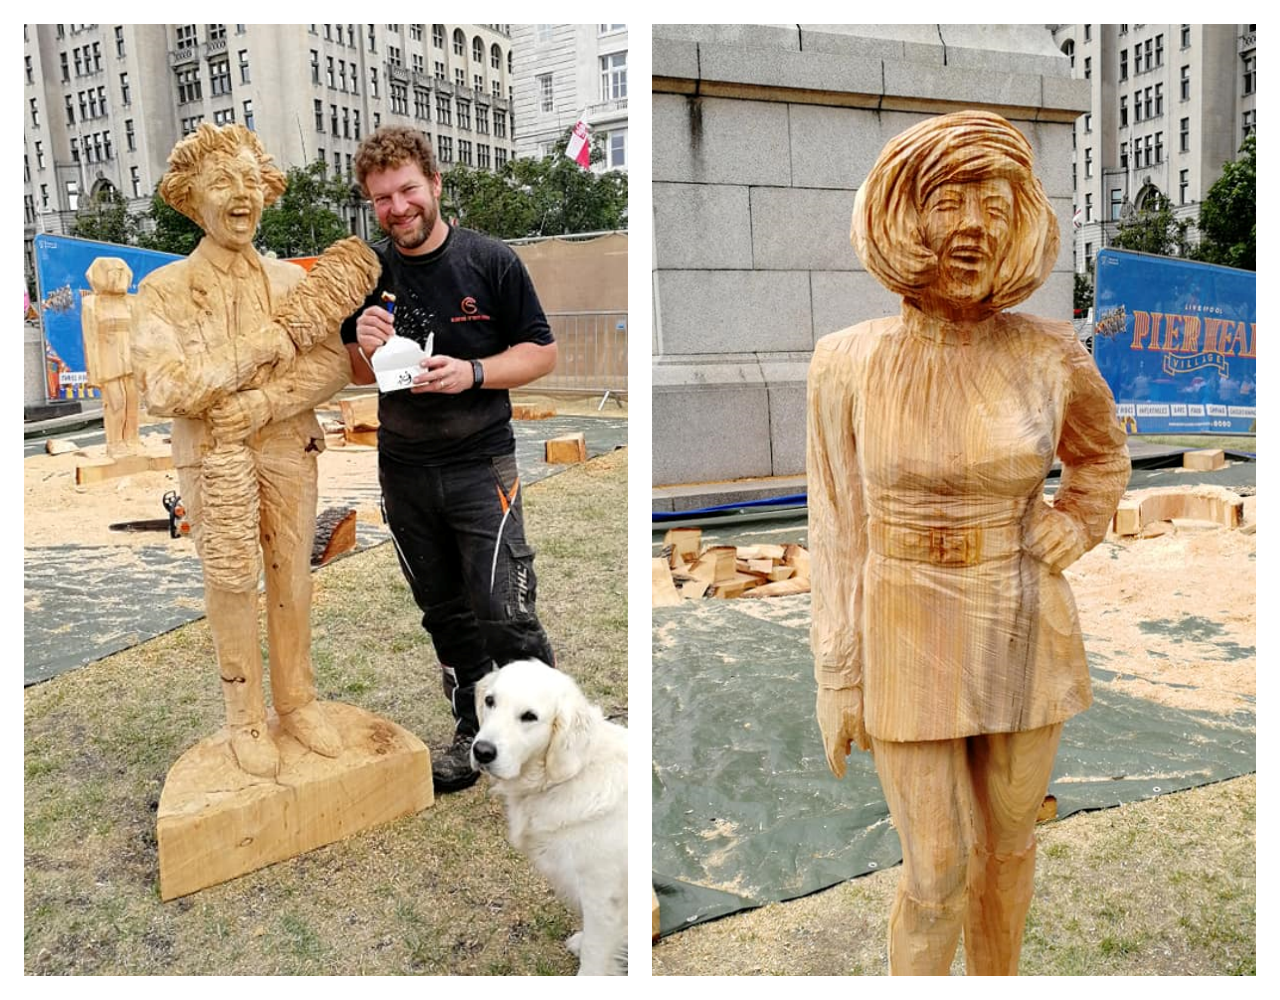 tv themed sculptures by simon o'rourke. To-scale wooden sculptures of Cilla Black and Ken Dodd outside the Liver Building